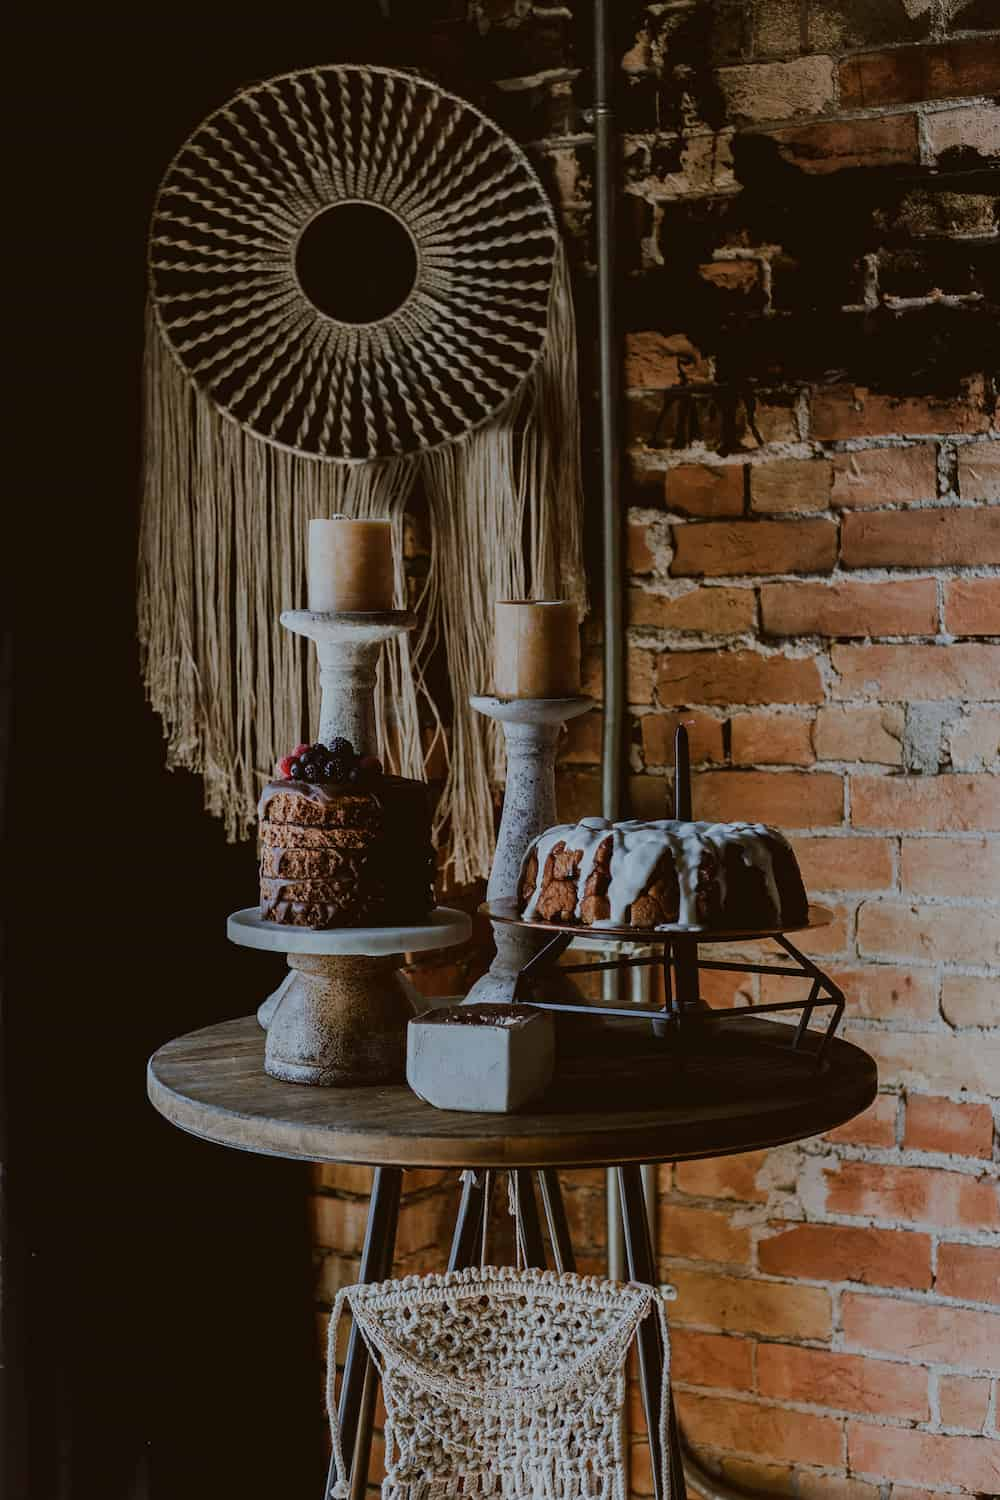 1B Afloral Industrial Boho Shoot_Bake Me A Kake_Photos From The Hive_White Lily Lane_3-2017_3